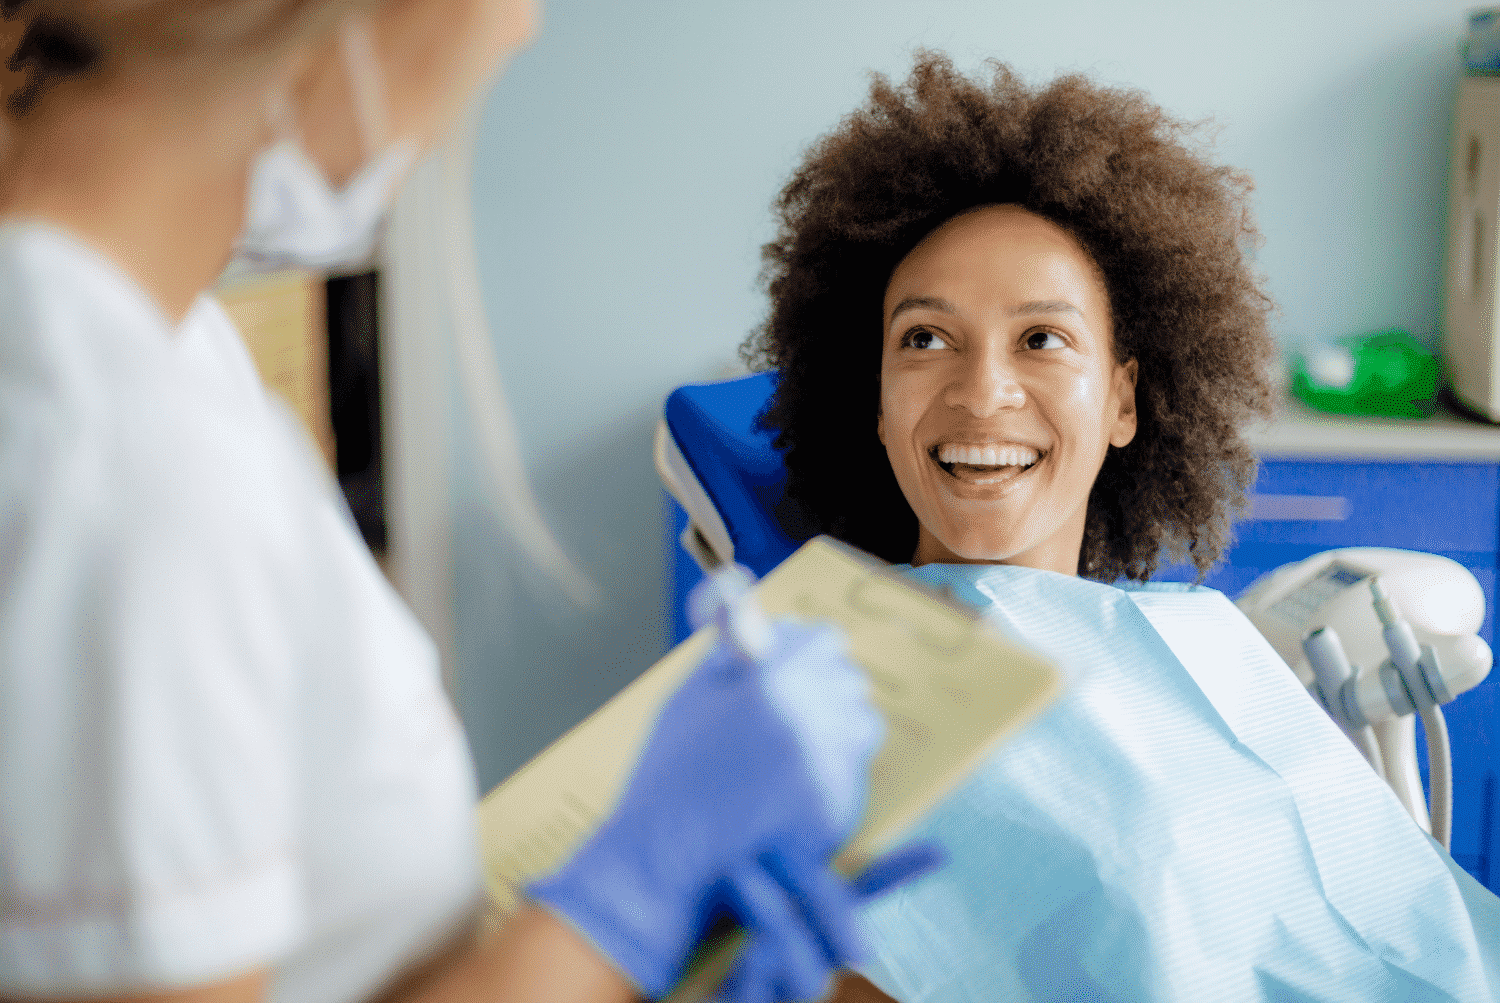 What Dental Health Issues Can Be Solved With Cosmetic Dentistry - Dr. Boals